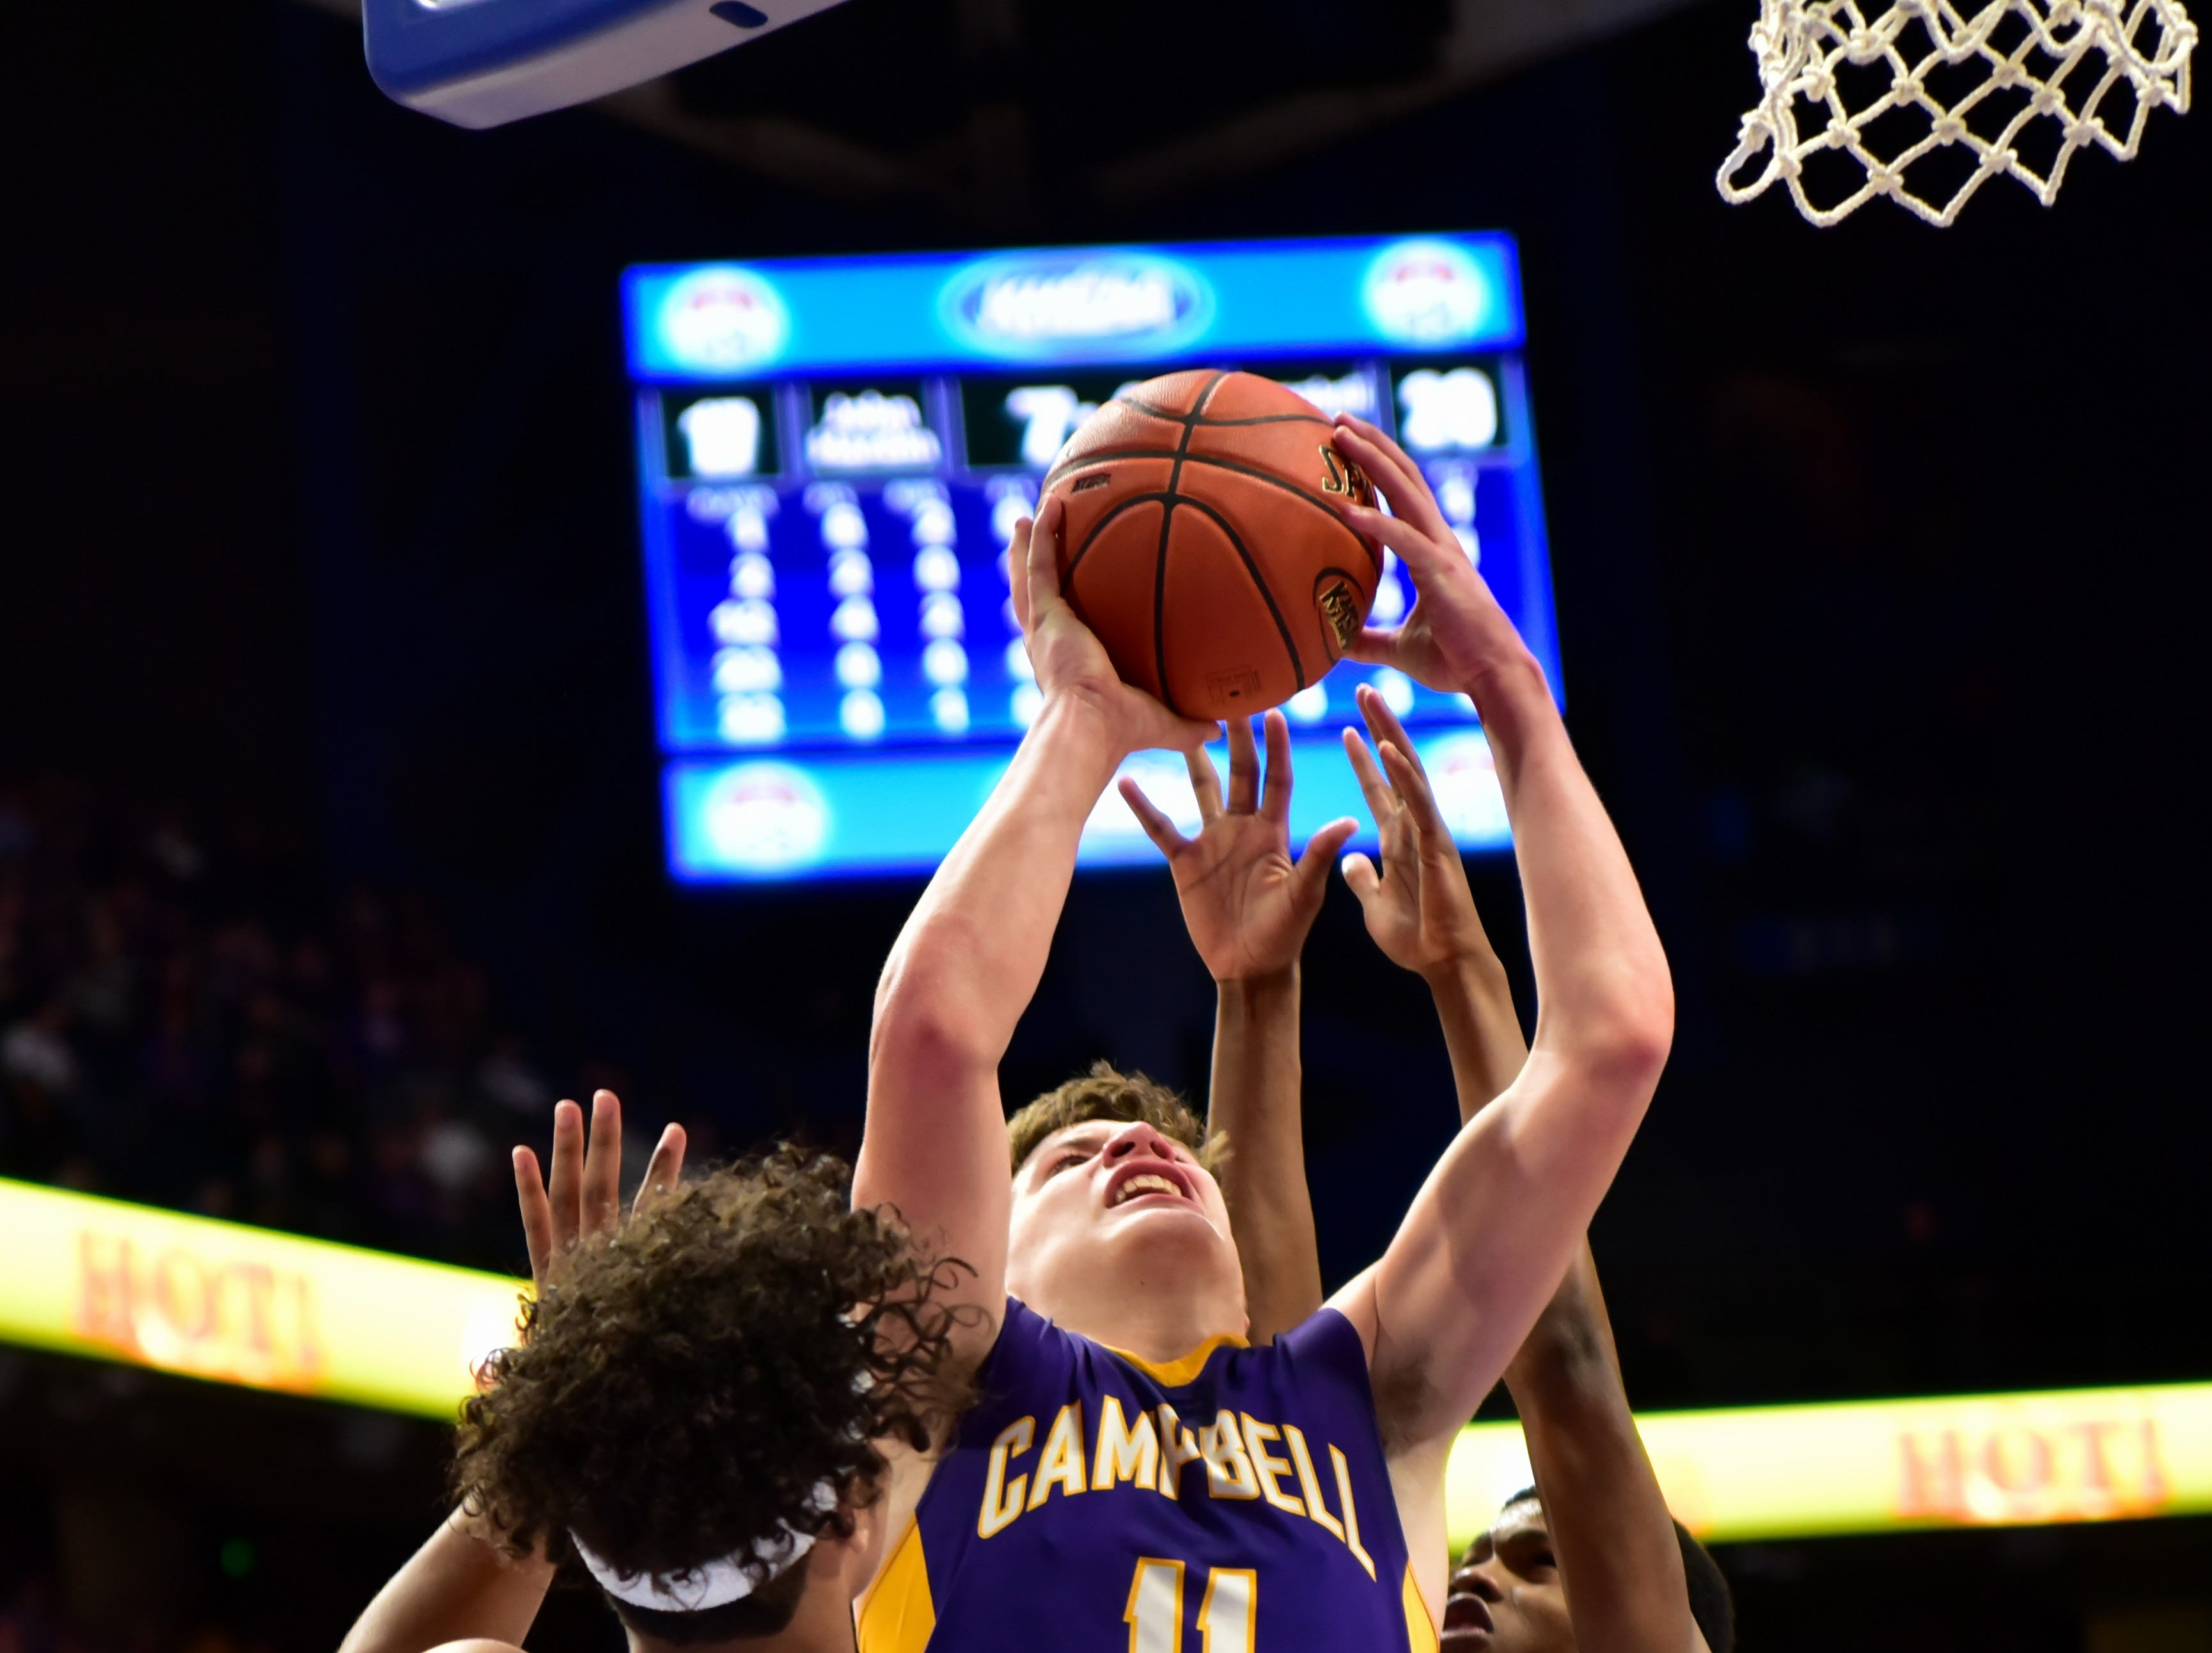 Reid Jolly of Campbell County plows through the lane and the John Hardin defense for a Camels score at the KHSAA Sweet 16 Tournament at Rupp Arena in Lexington, KY, March 6, 2019